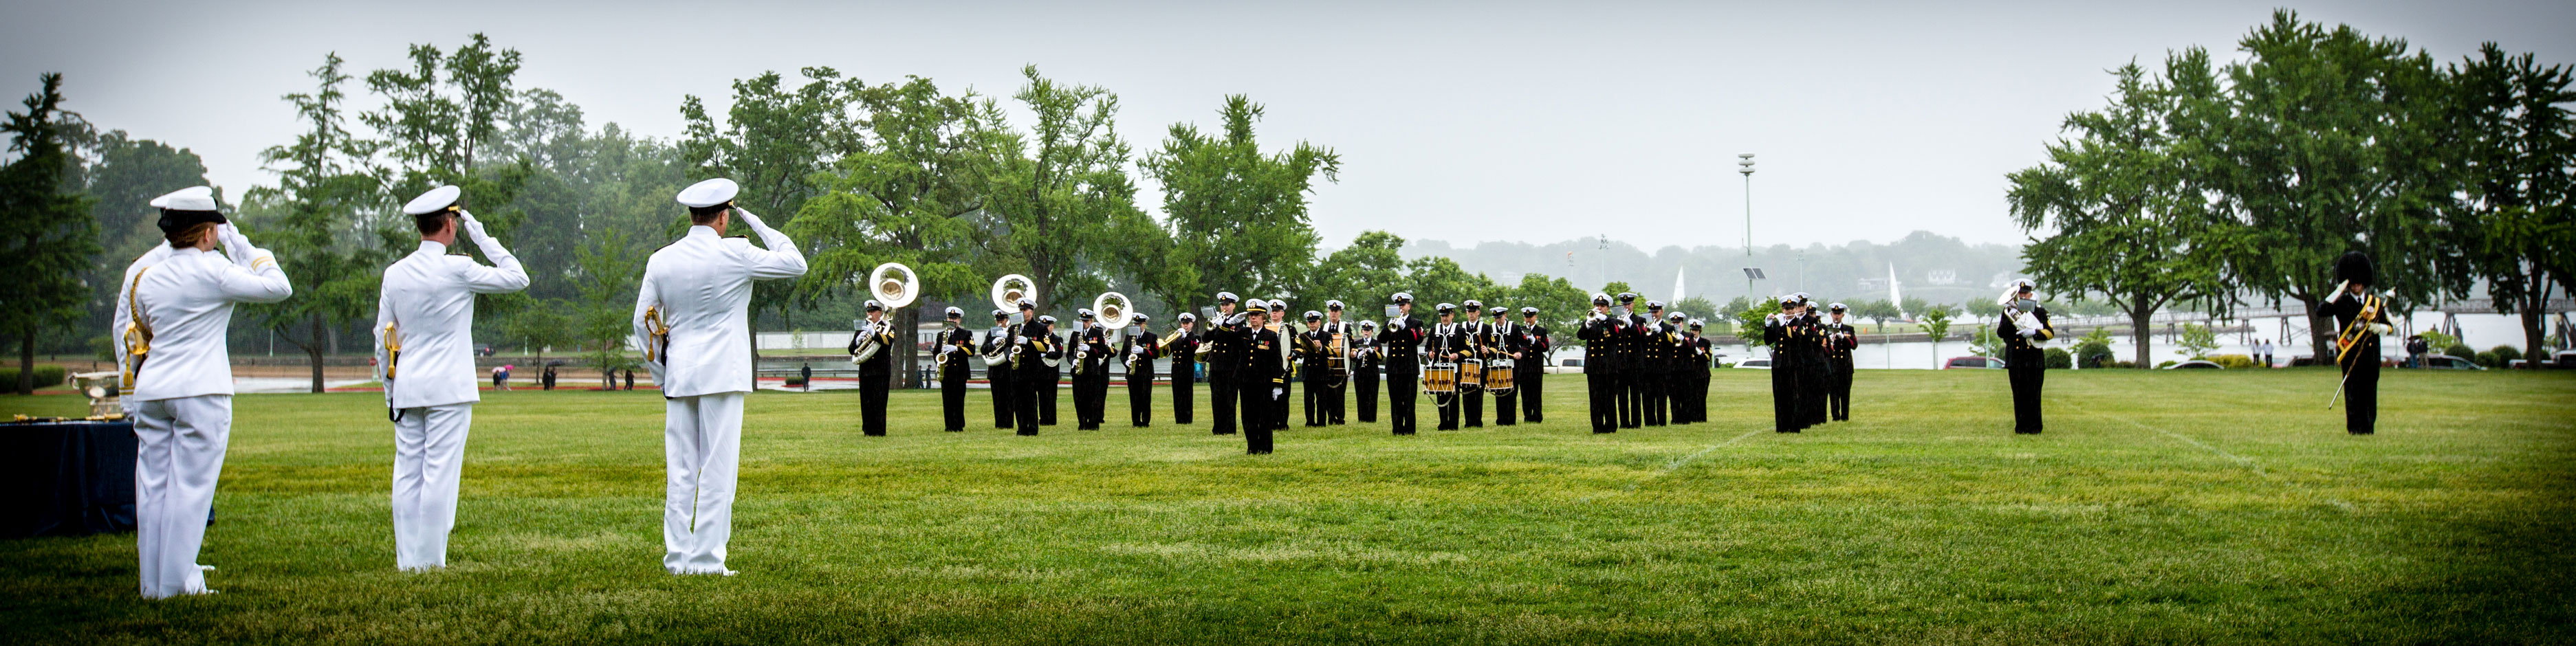 Marching Band :: Naval Academy Band :: USNA